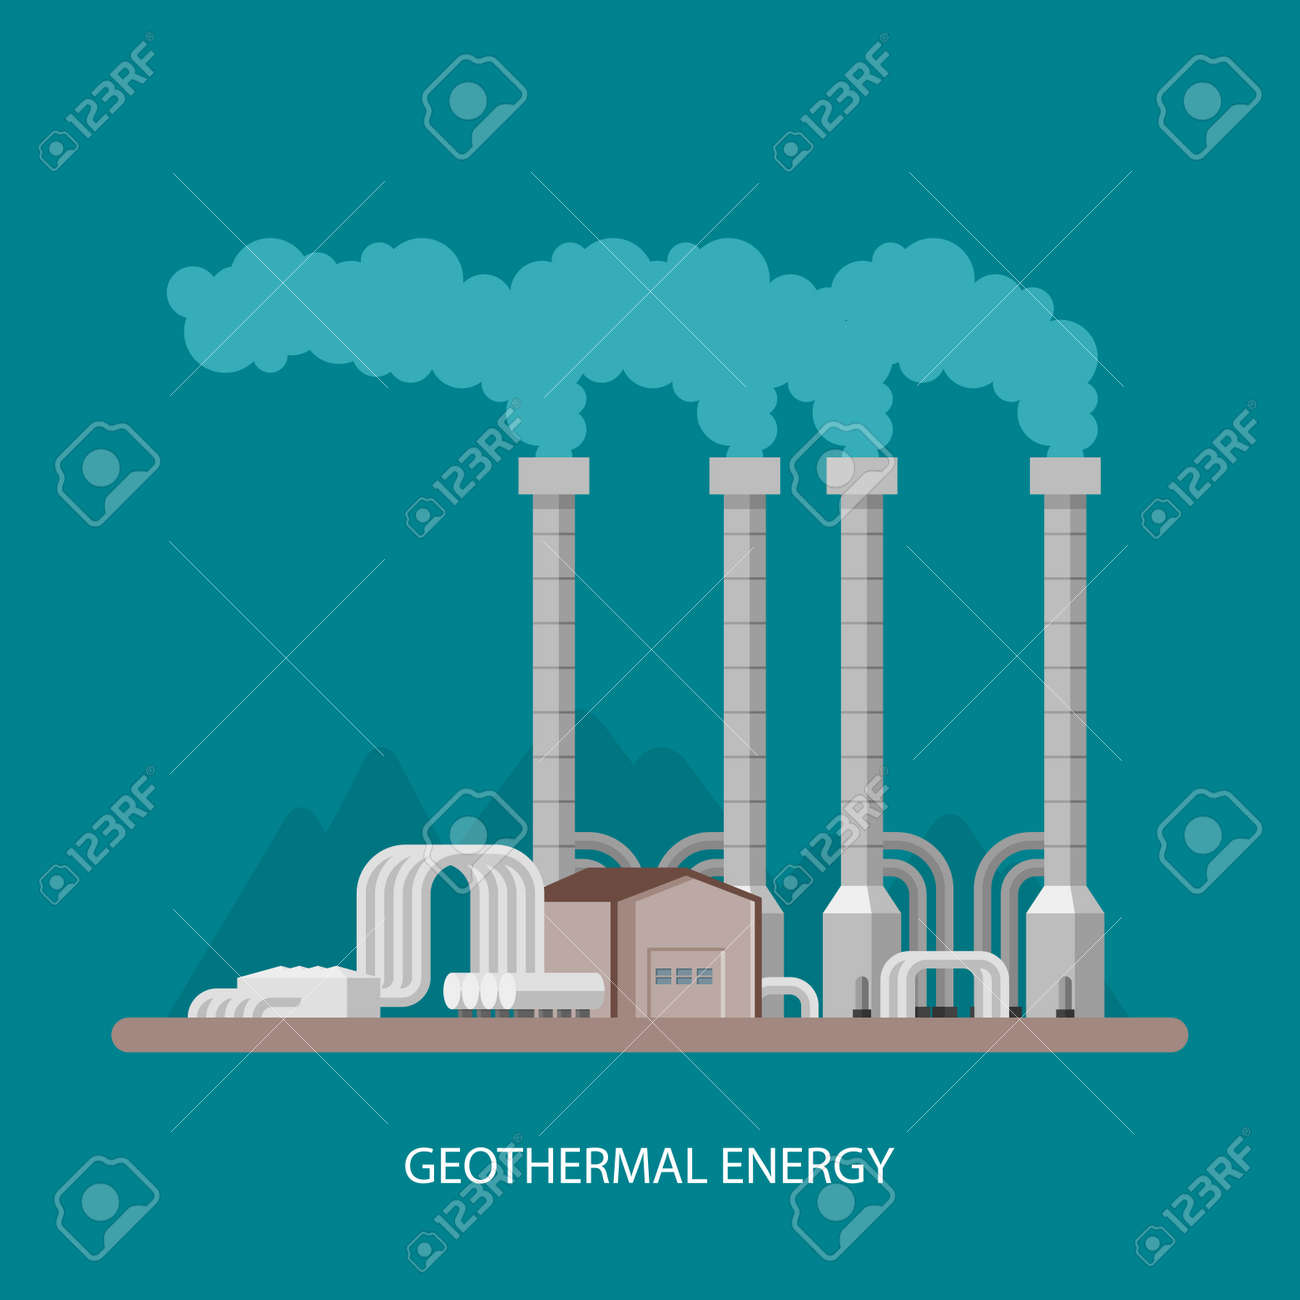 Geothermal power plant and factory. Geothermal energy industrial concept. Vector illustration in flat style. Geothermal station background. Renewable energy sources. - 56633195